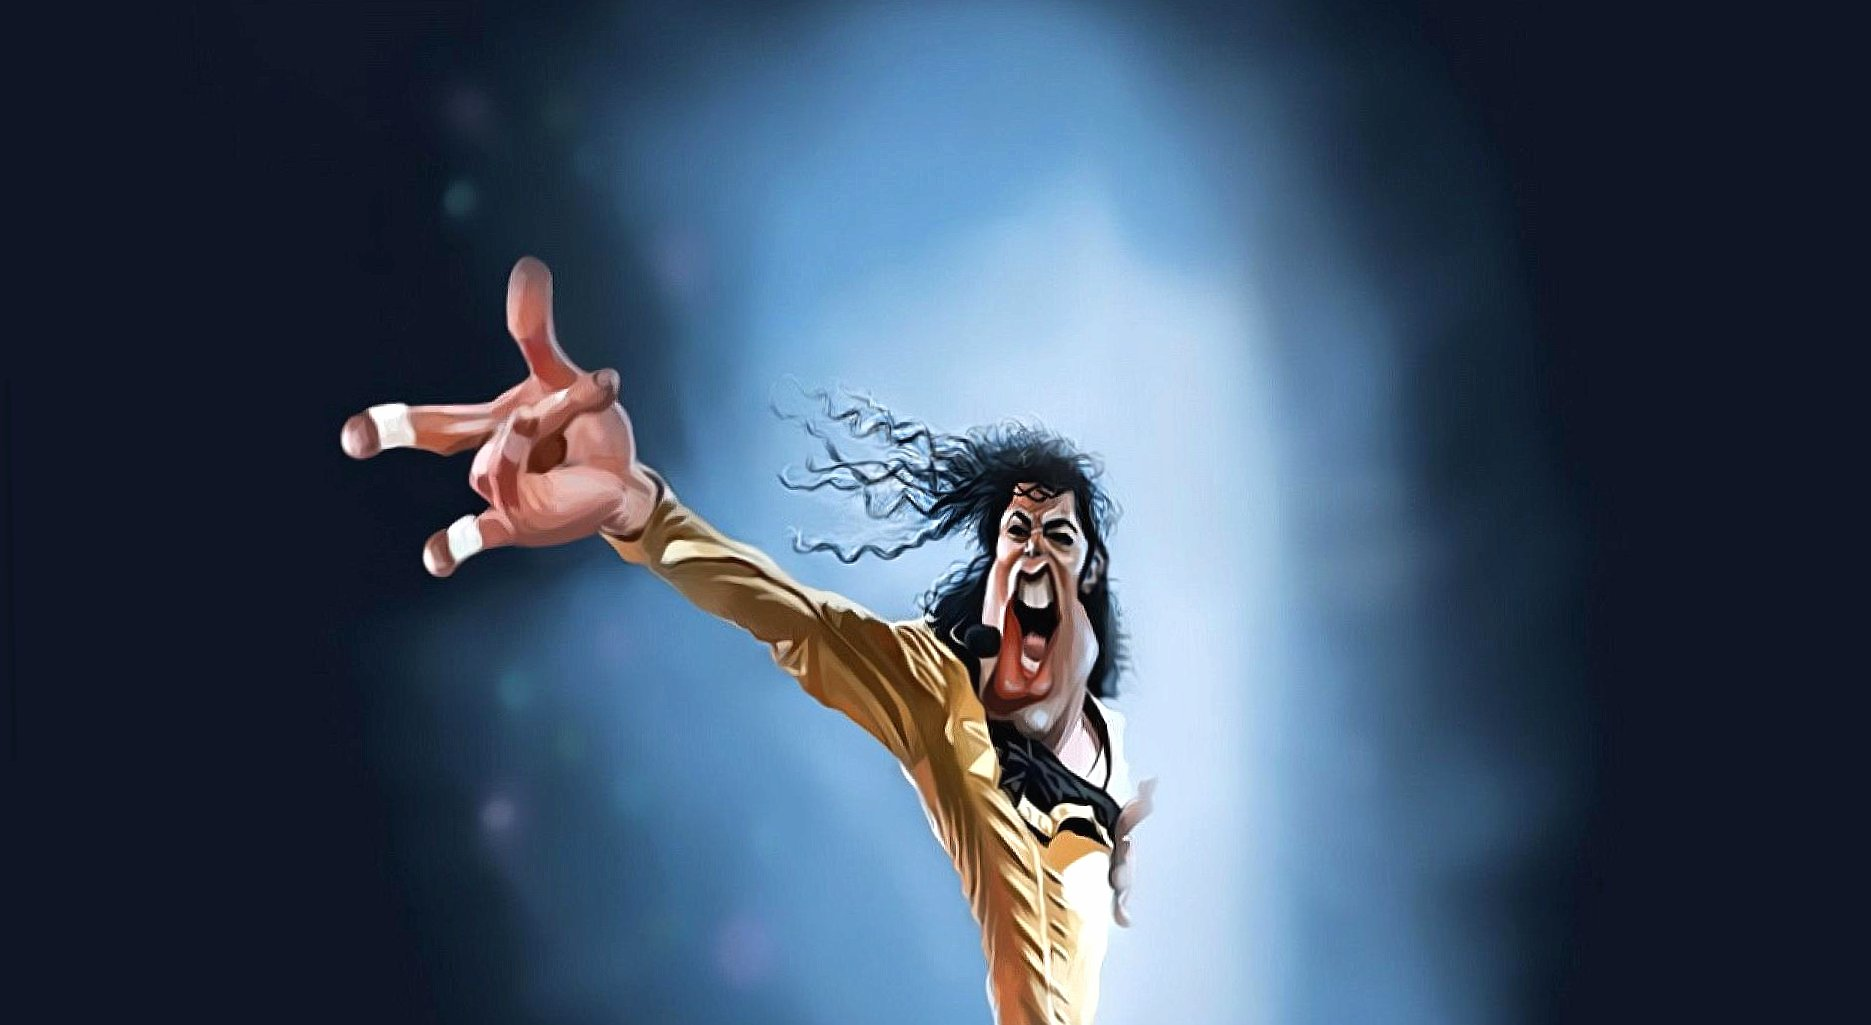 Funny michael jackson caricature wallpapers HD quality